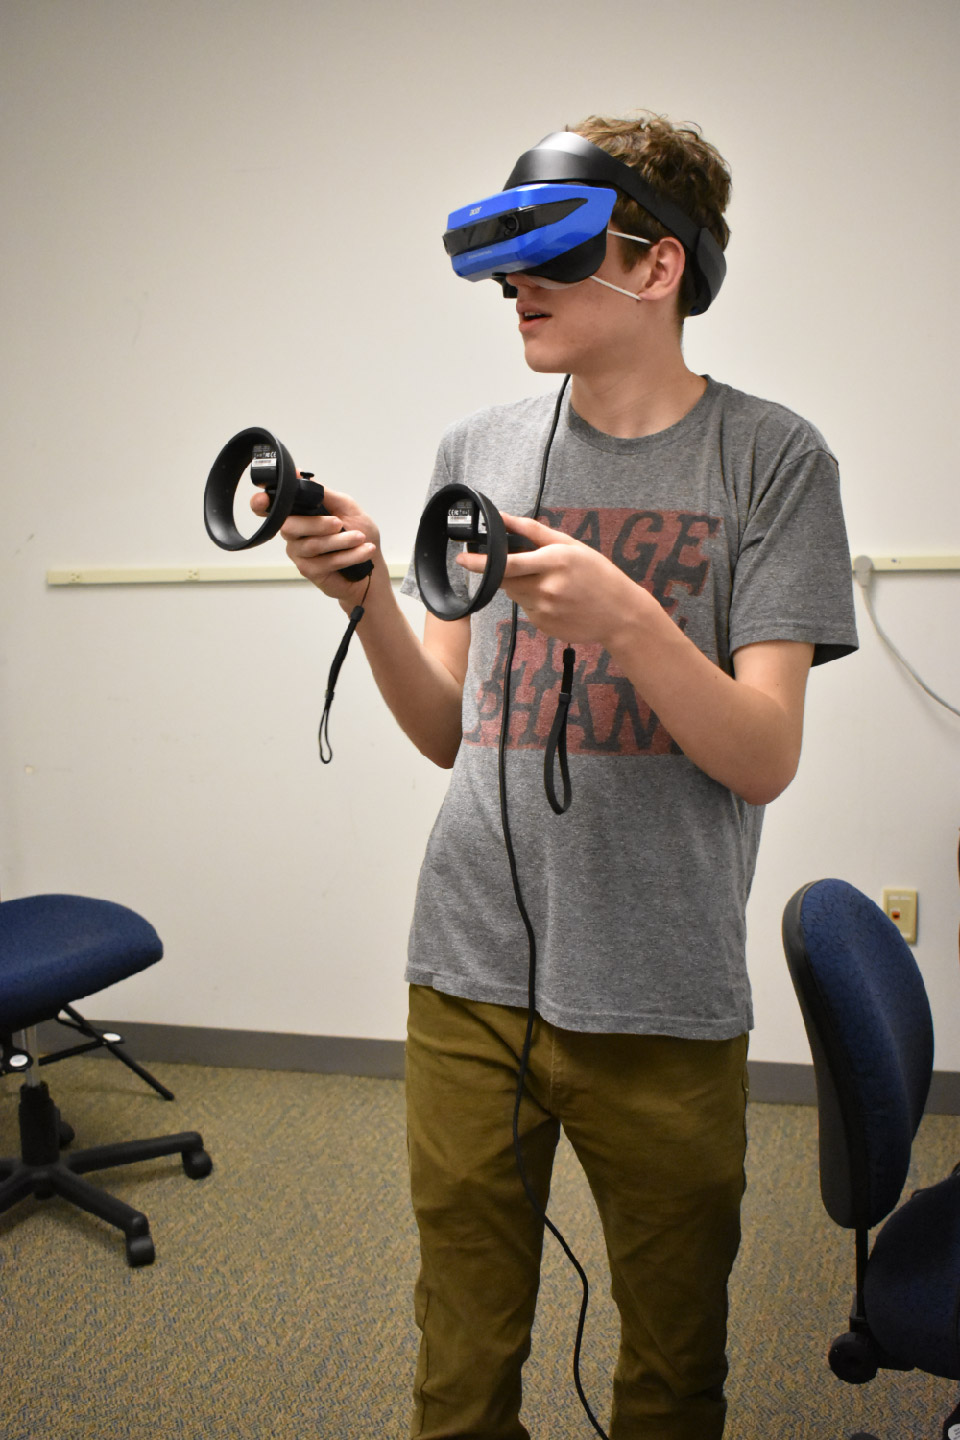 AACC's Campus Current Tech Editor Alex Fregger tries out a virtual reality headset for the first time in the college's VR room in the CALT Building.